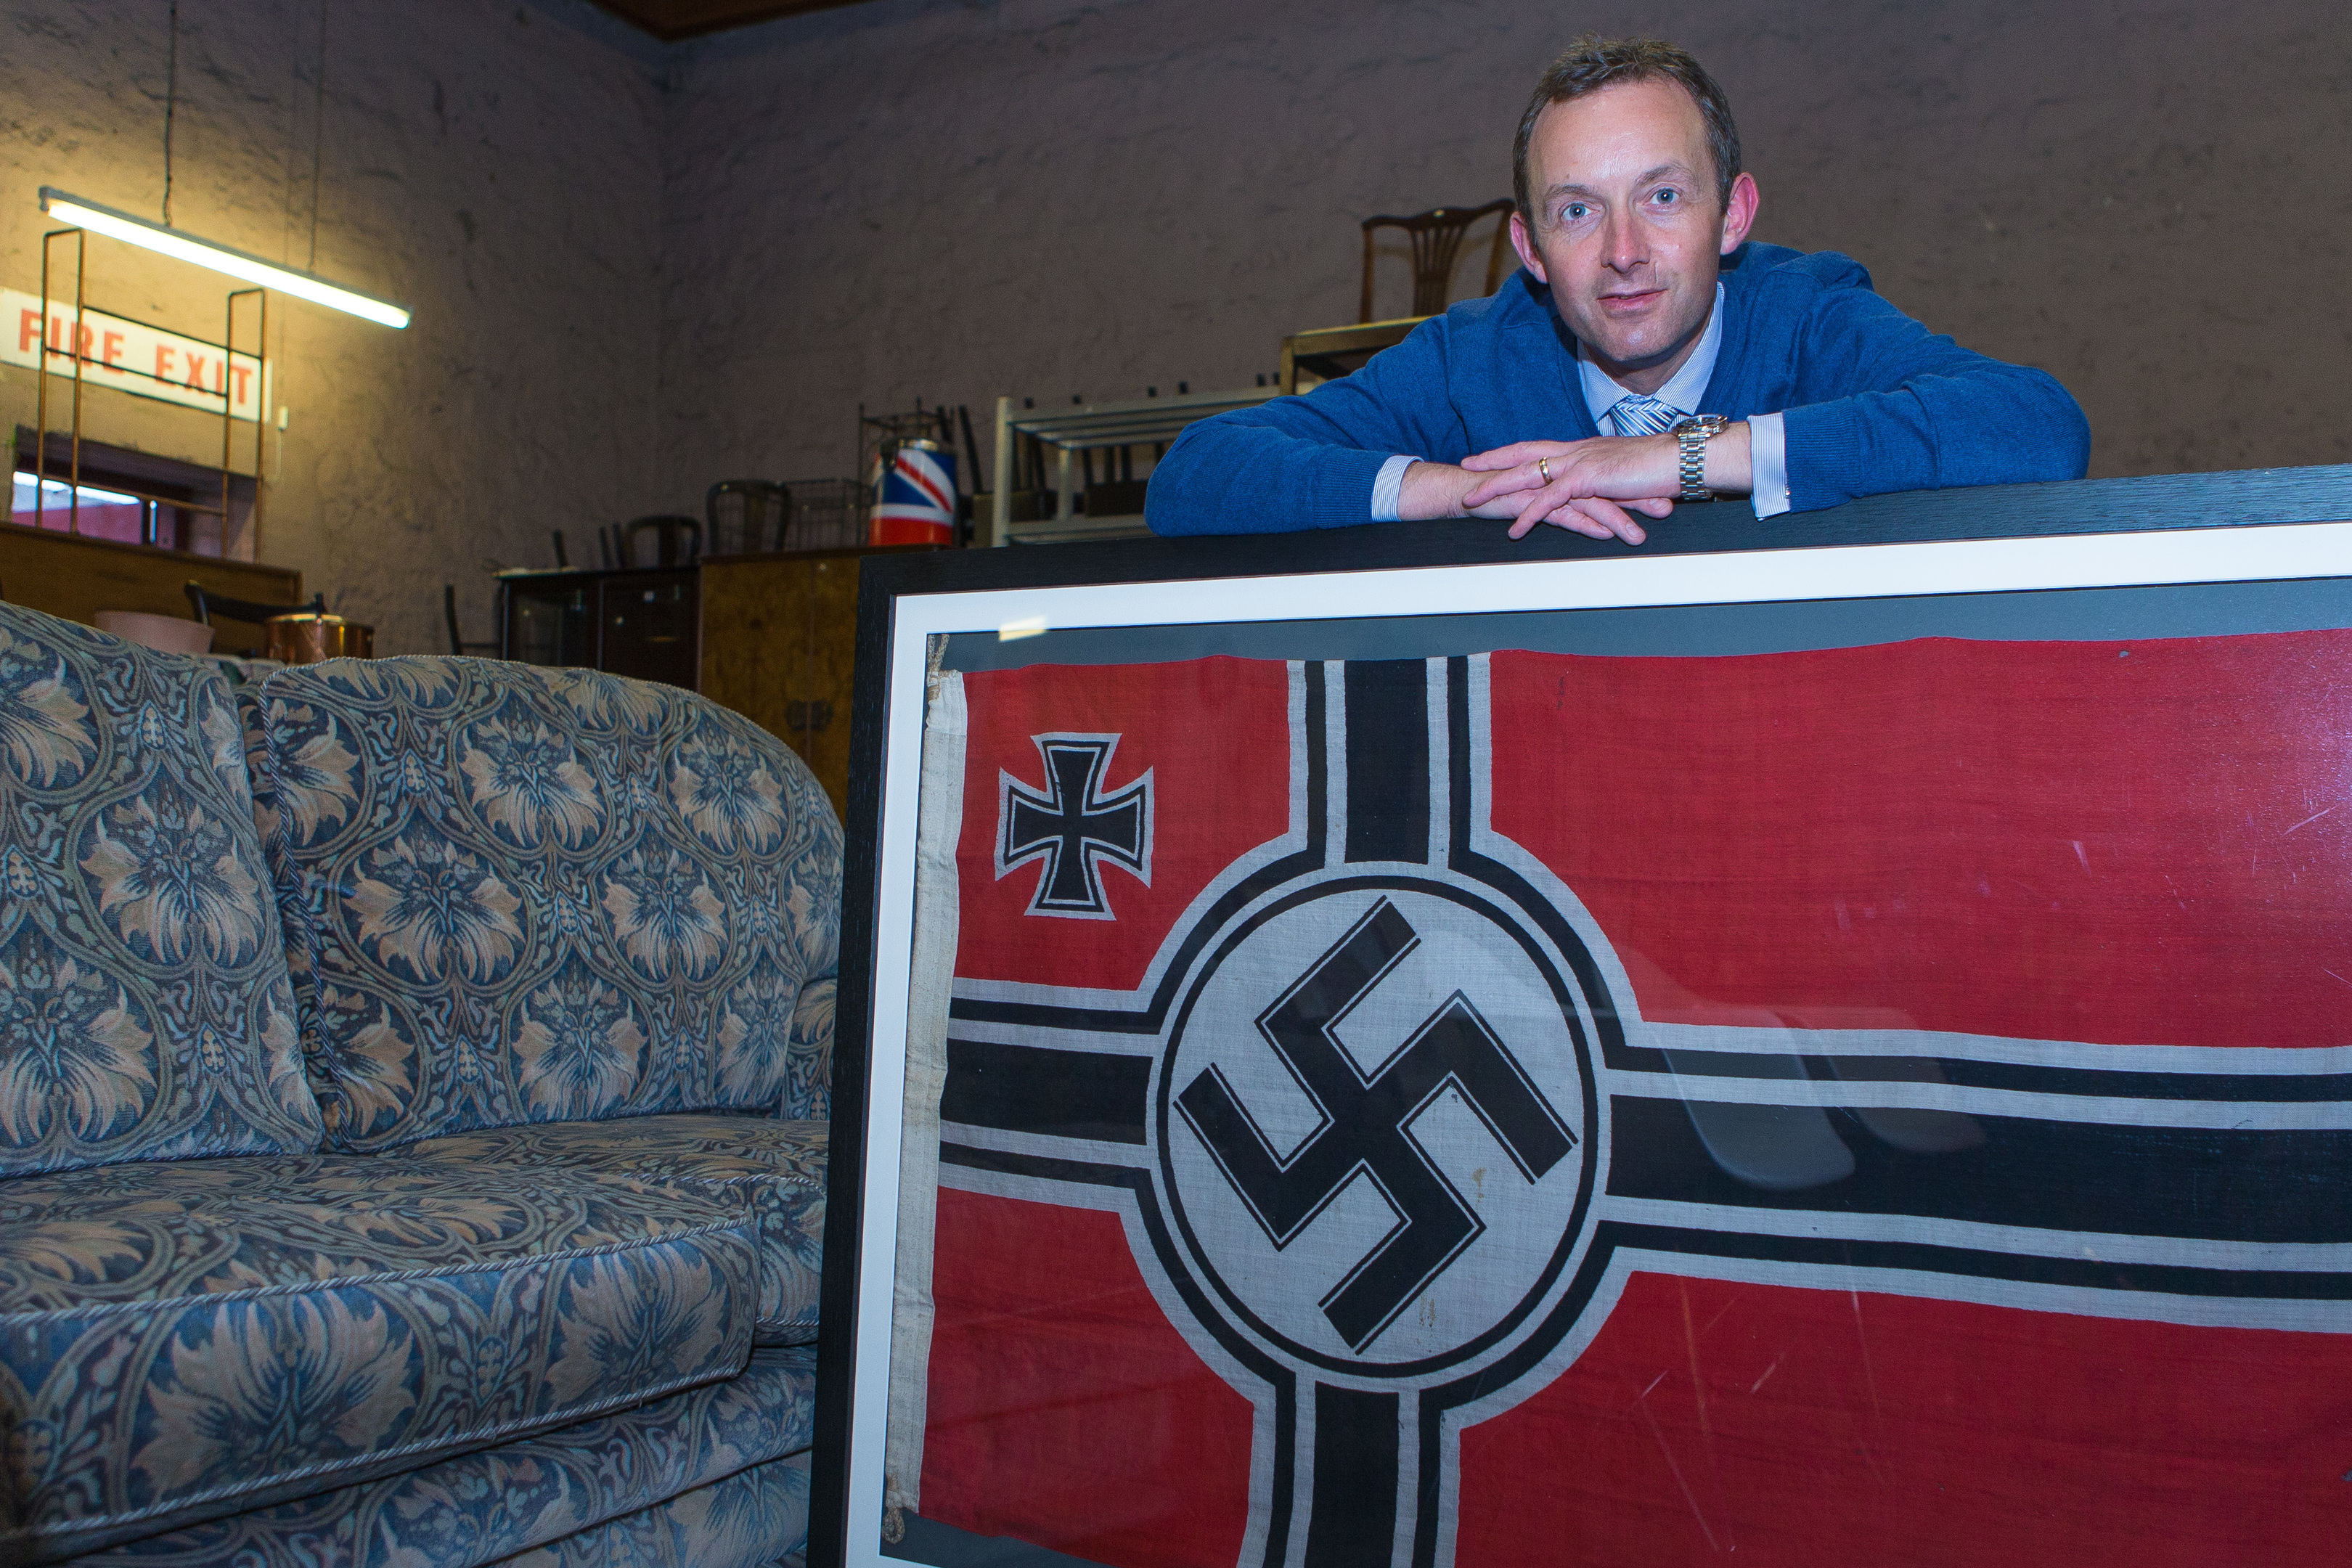 Steven Dewar with the flag from the captured submarine.